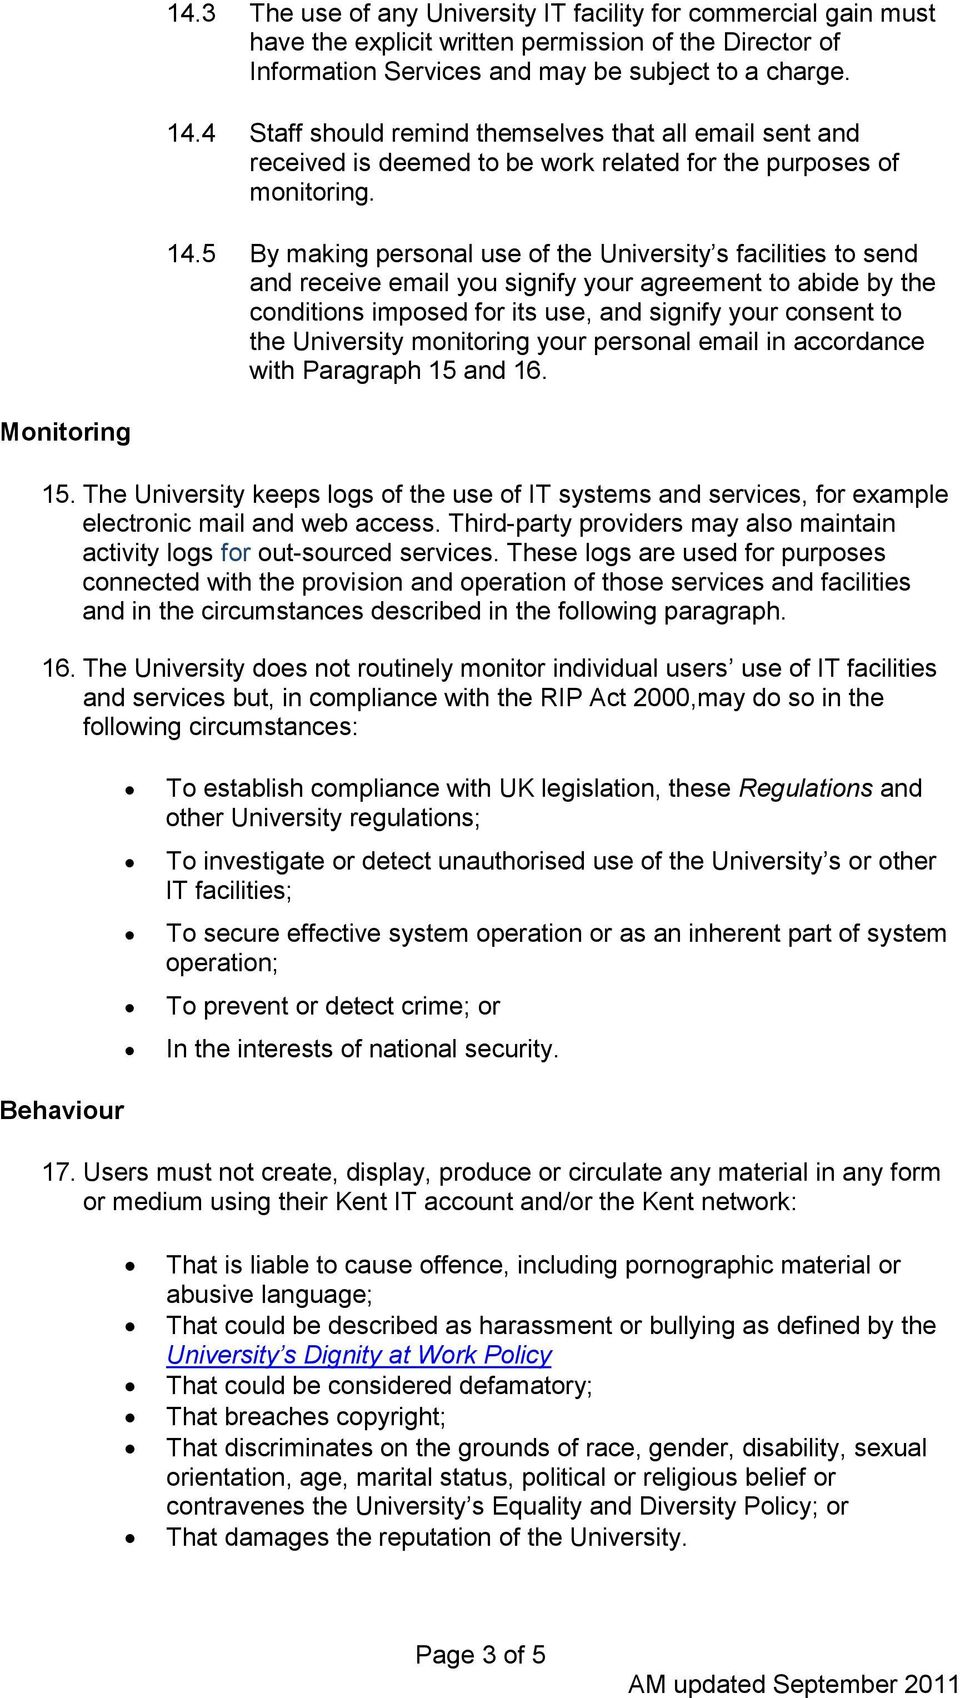 5 By making personal use of the University s facilities to send and receive email you signify your agreement to abide by the conditions imposed for its use, and signify your consent to the University